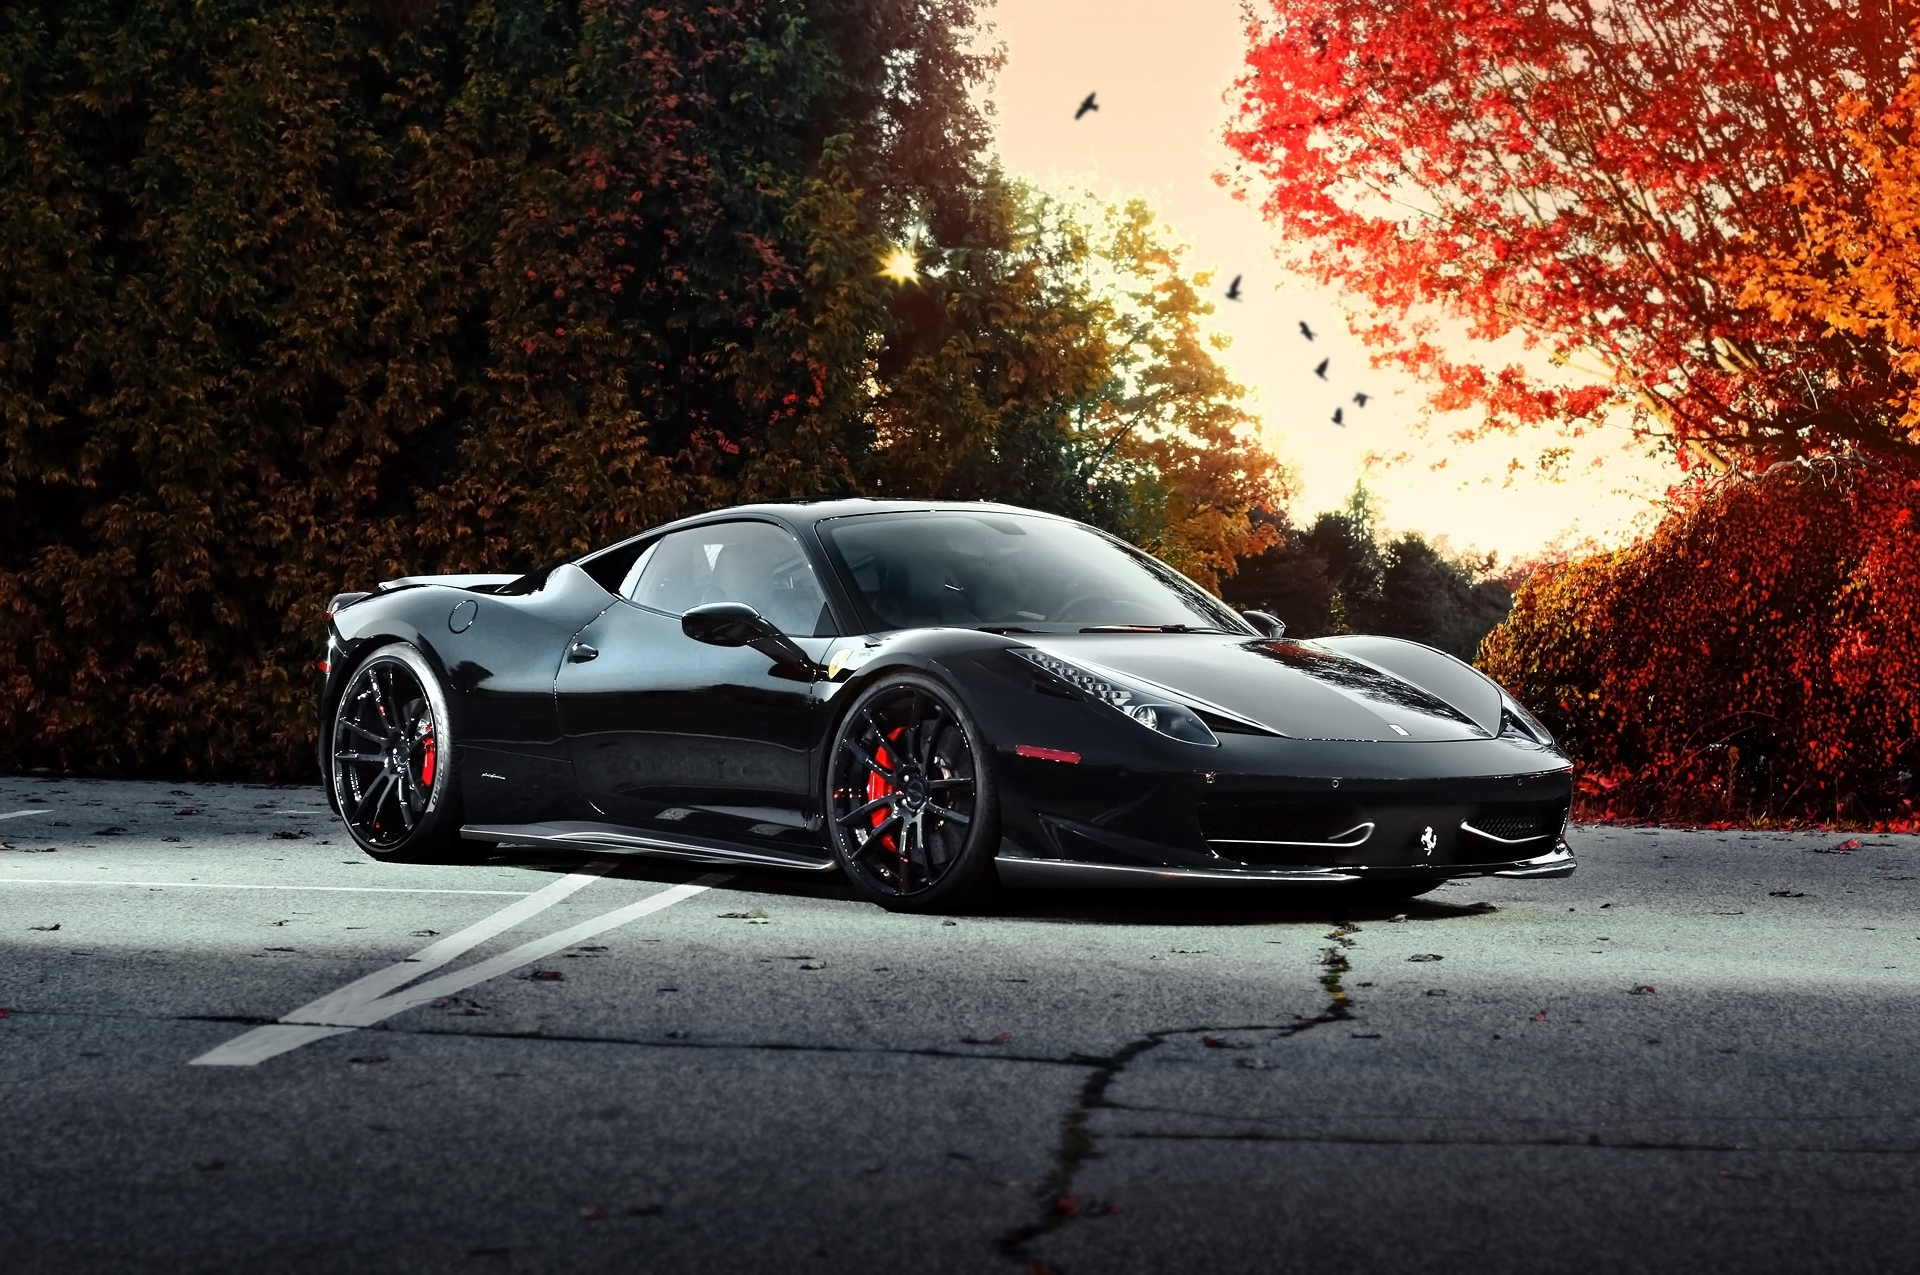 92302 download wallpaper Cars, Ferrari, 458 Italia, Auto, Side View screensavers and pictures for free